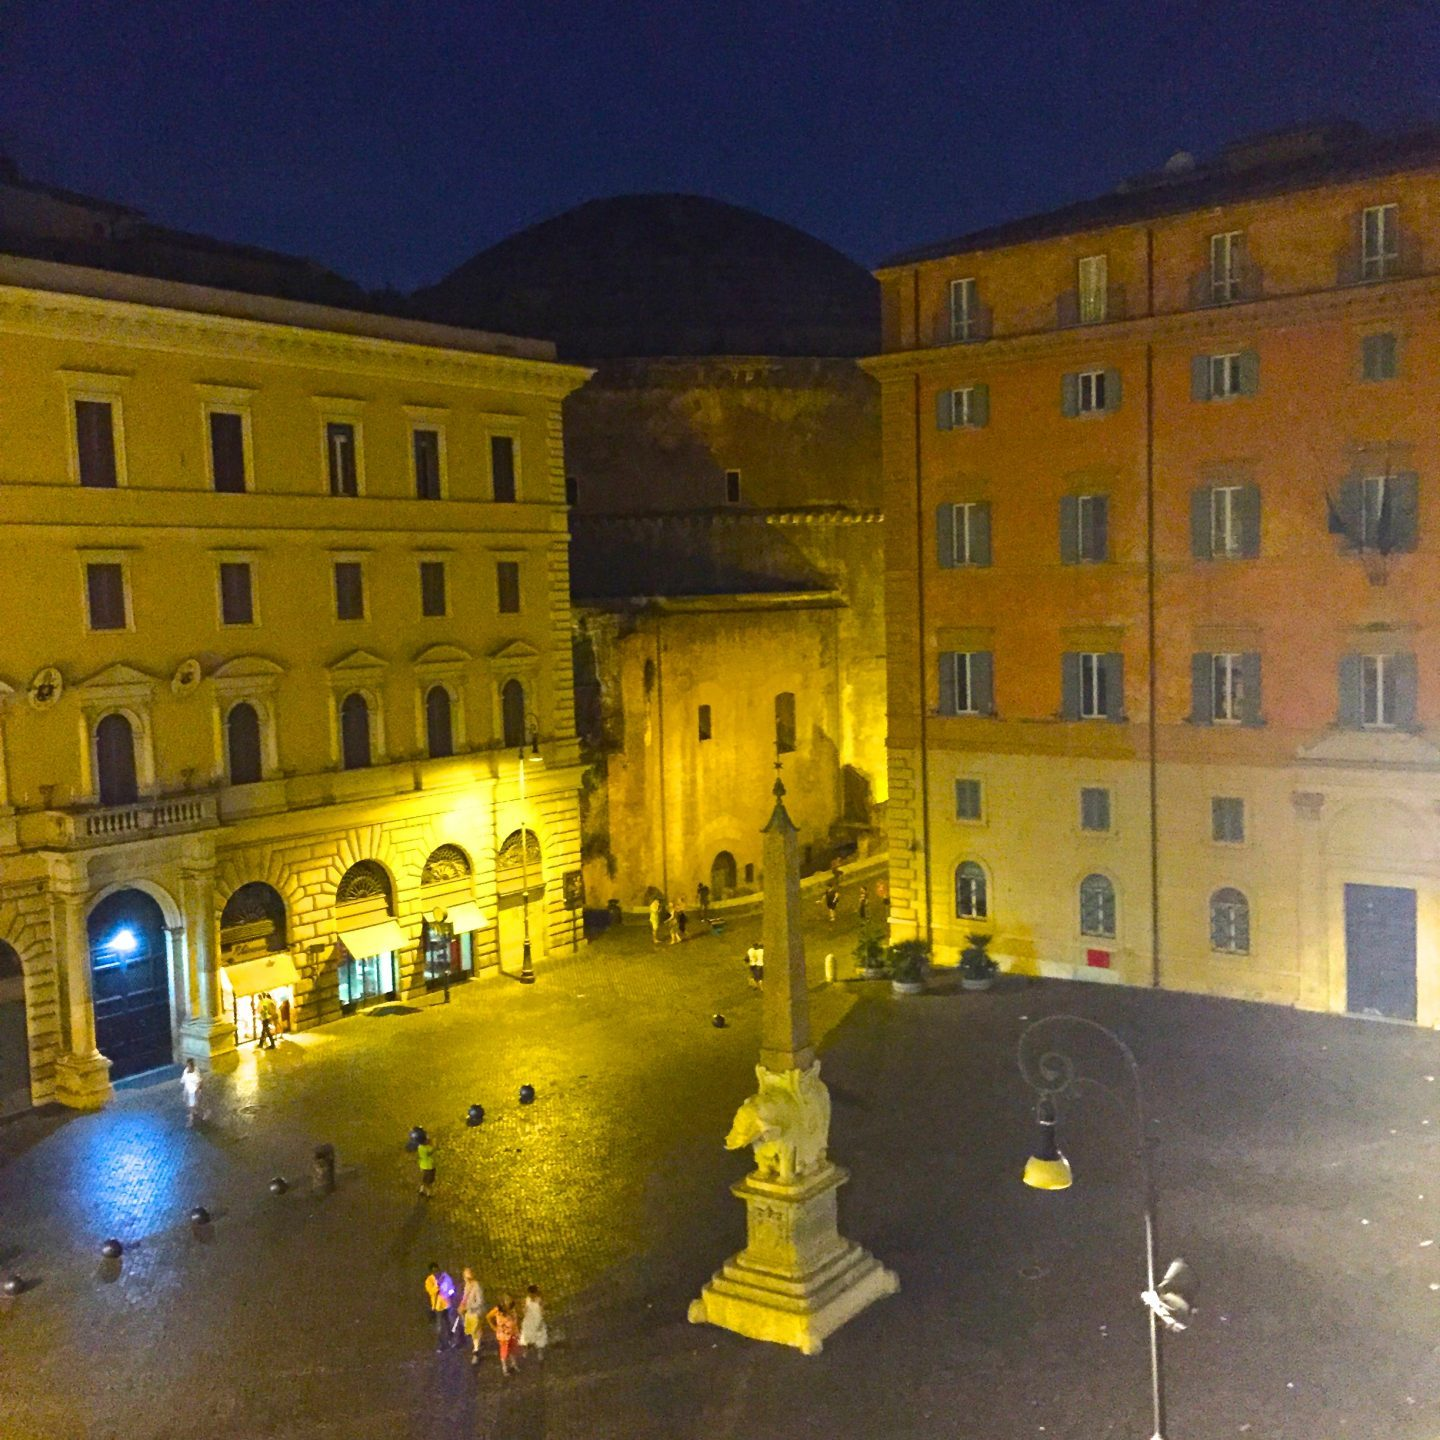 Playing in a Roman piazza at night.